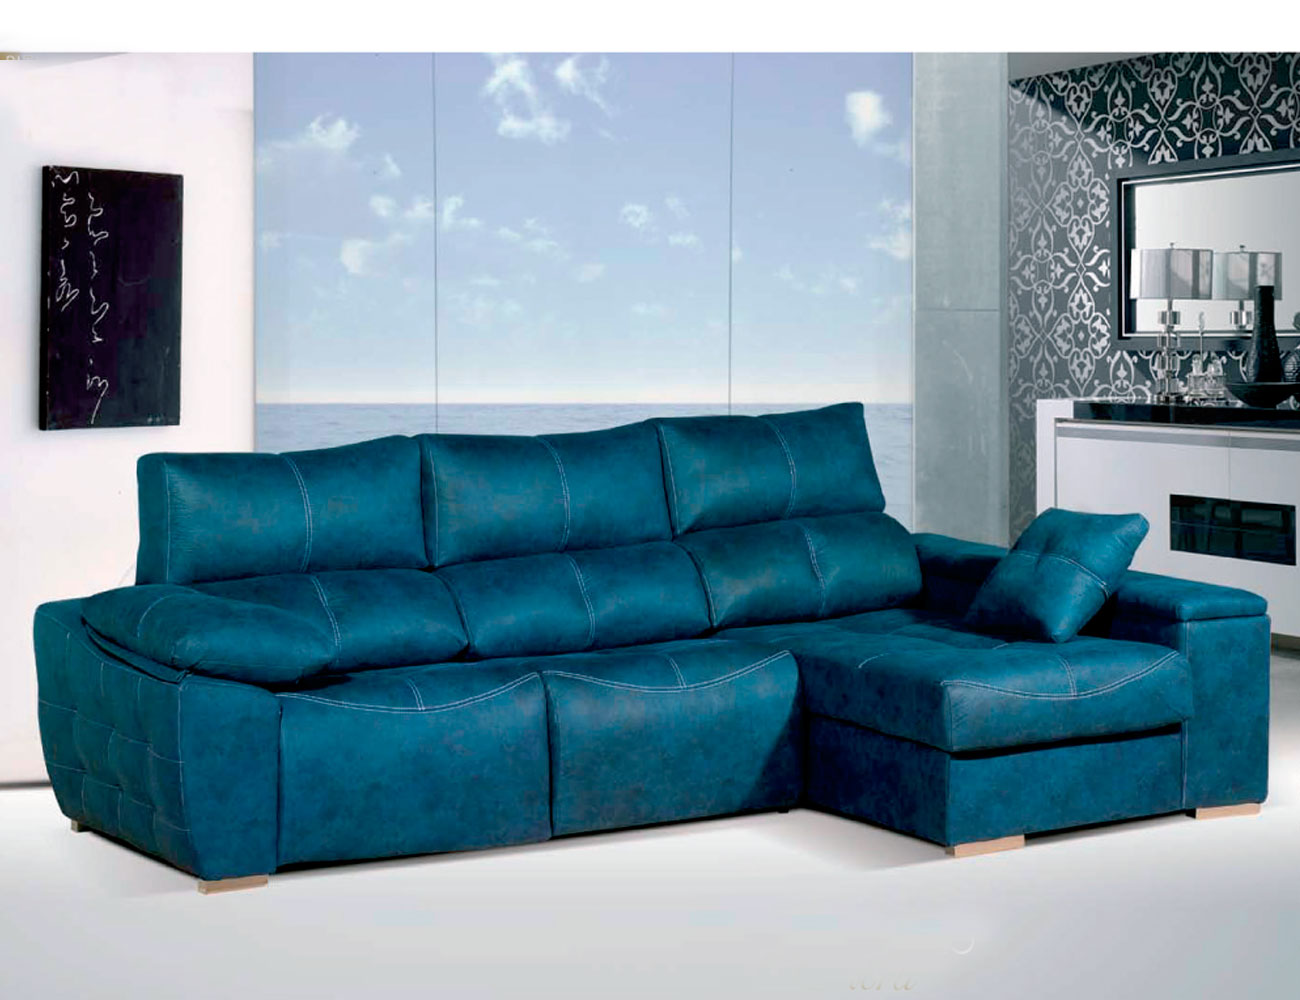 Sofa chaiselongue relax 2 motores anti manchas turquesa47